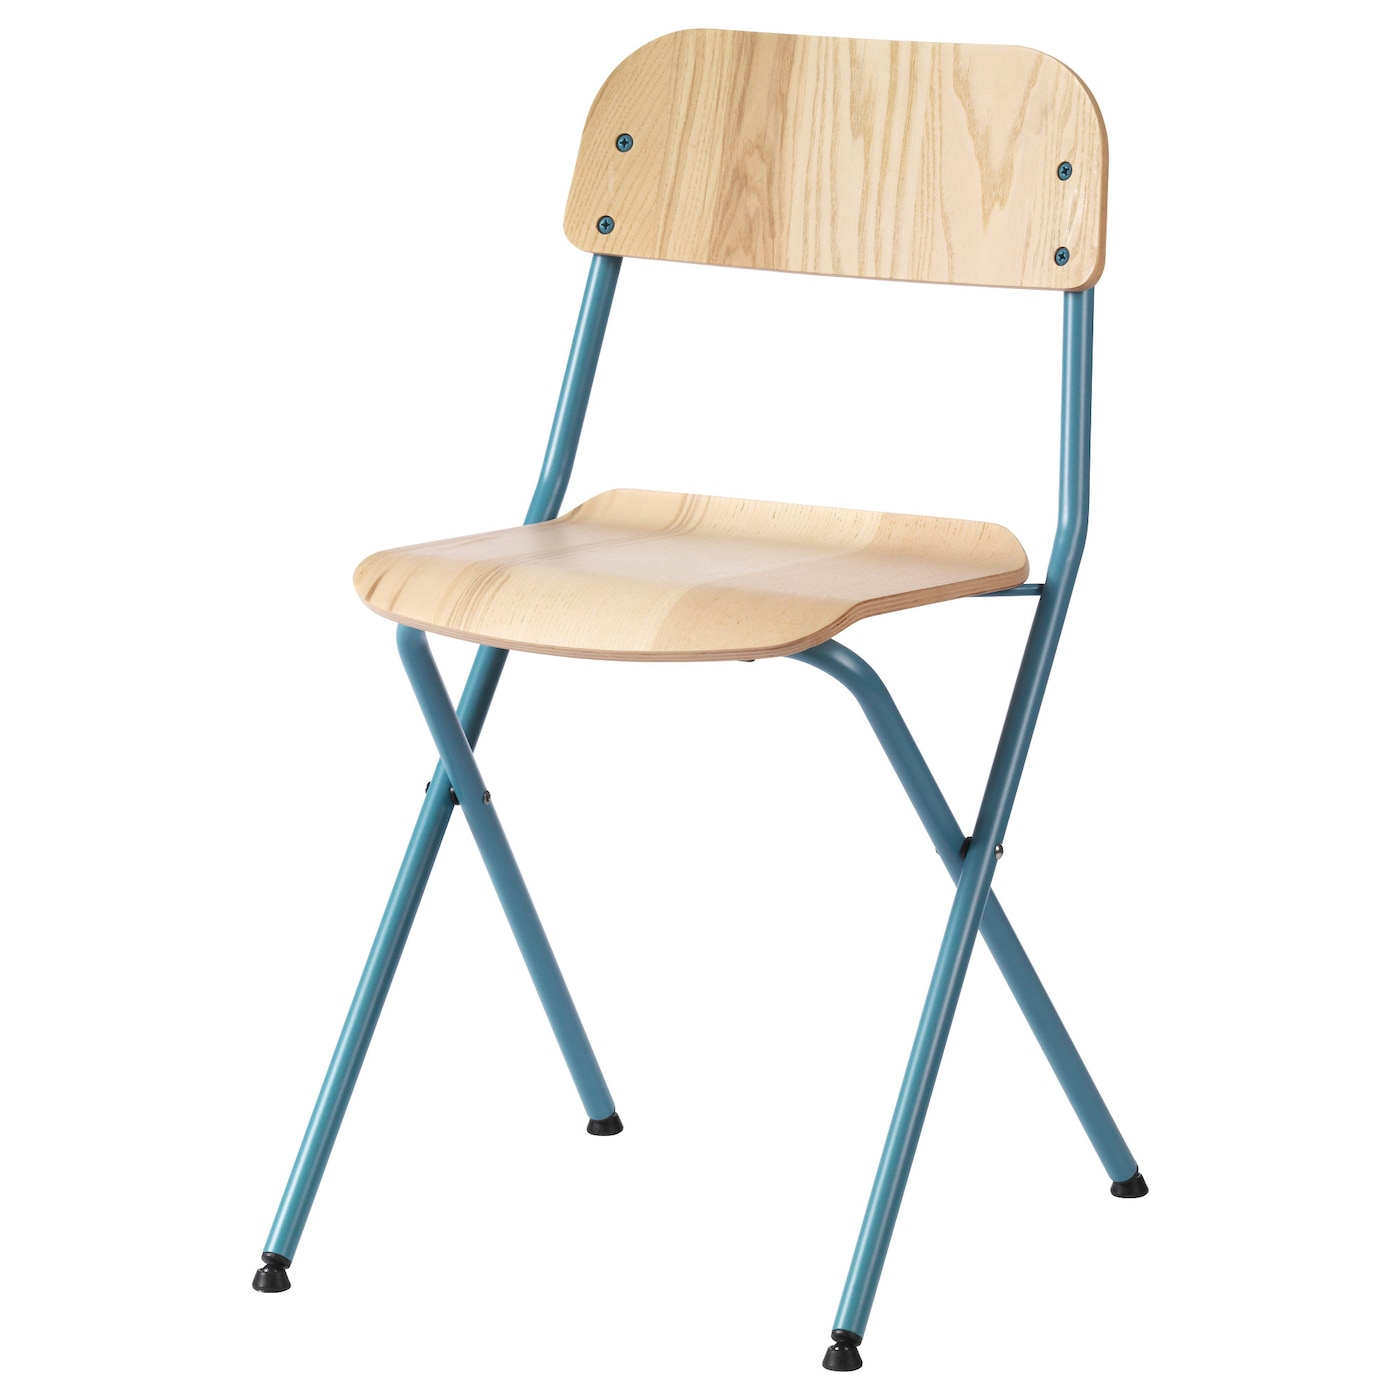 50 Best Folded Chair